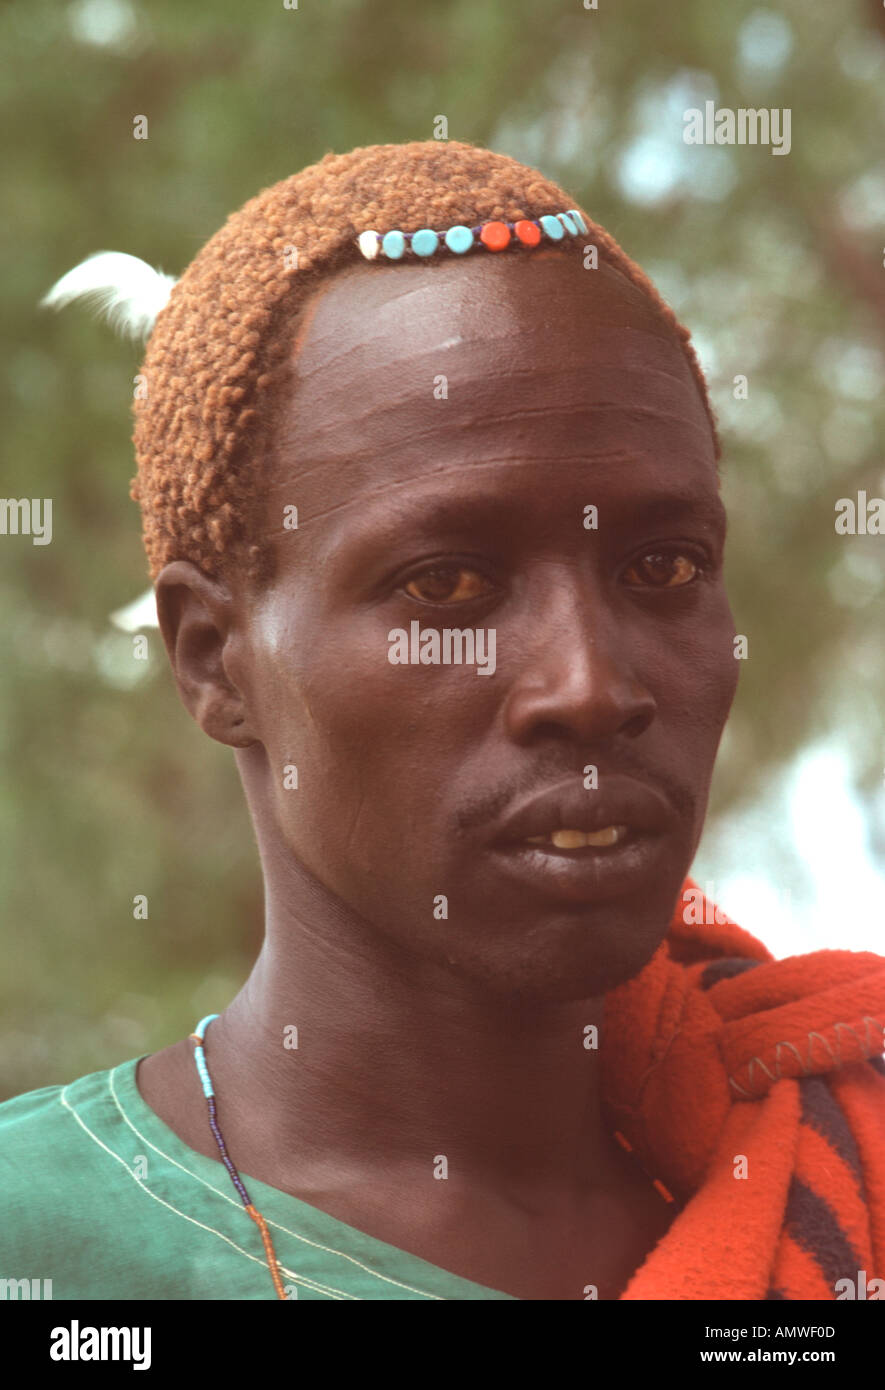 A young Dinka man with tribal scars on his forehead has a neat hairdo simply adorned with beads - Stock Image